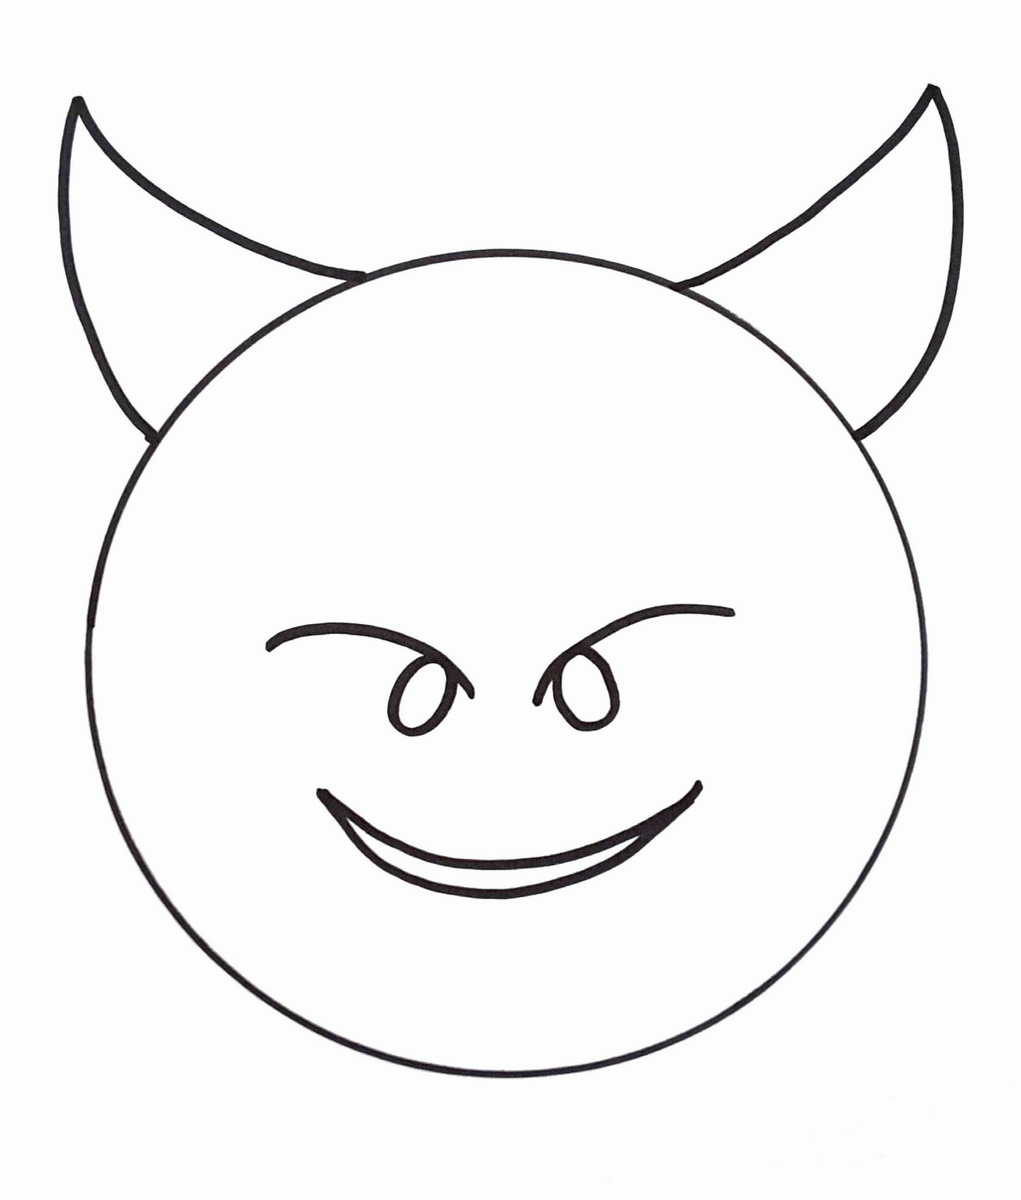 1021x1200 Emoji Coloring Pages